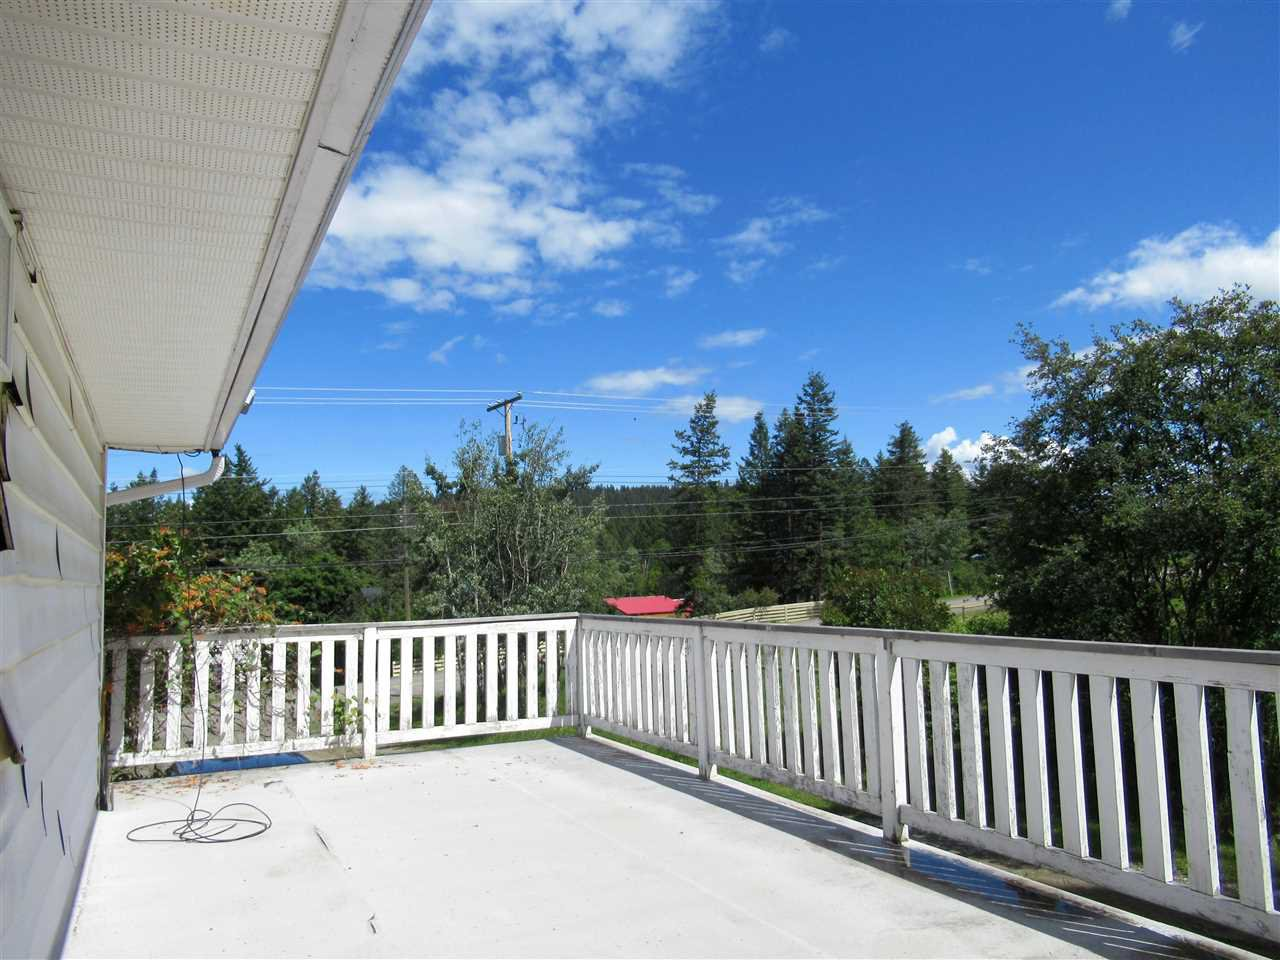 Photo 13: Photos: 1631 DOG CREEK Road in Williams Lake: Esler/Dog Creek House for sale (Williams Lake (Zone 27))  : MLS®# R2390079